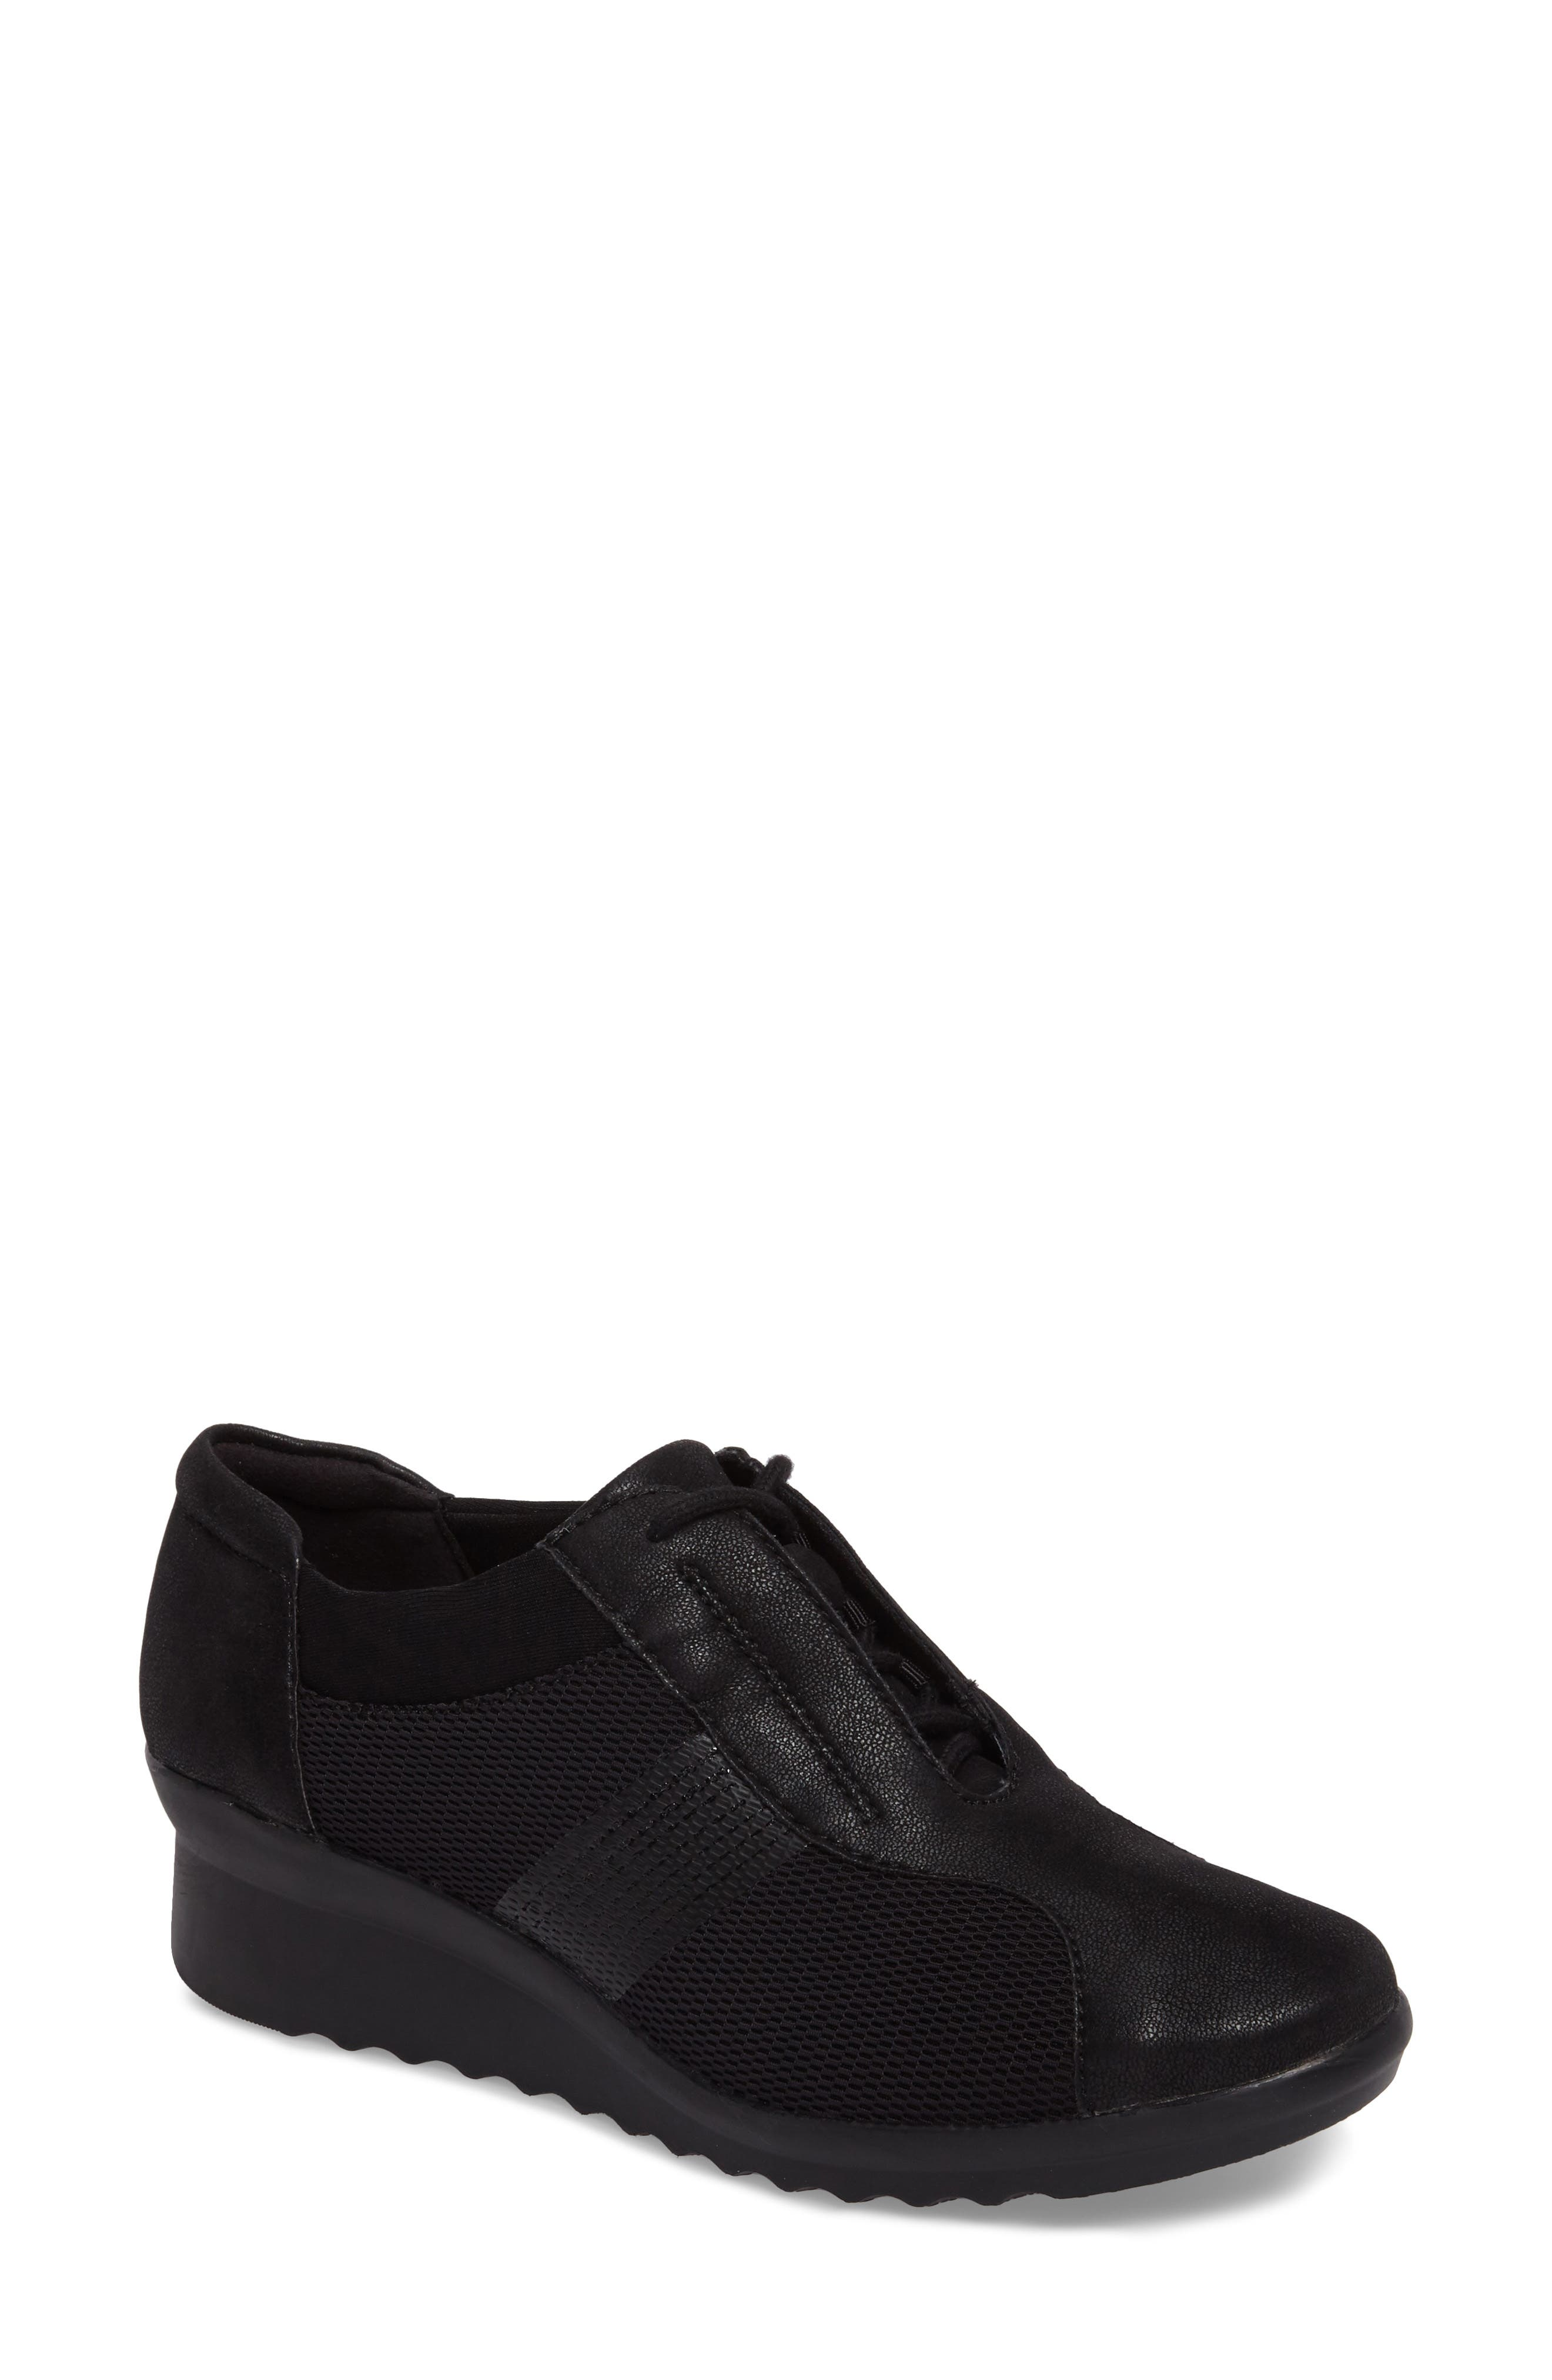 Caddell Fly Sneaker,                             Main thumbnail 1, color,                             BLACK FABRIC